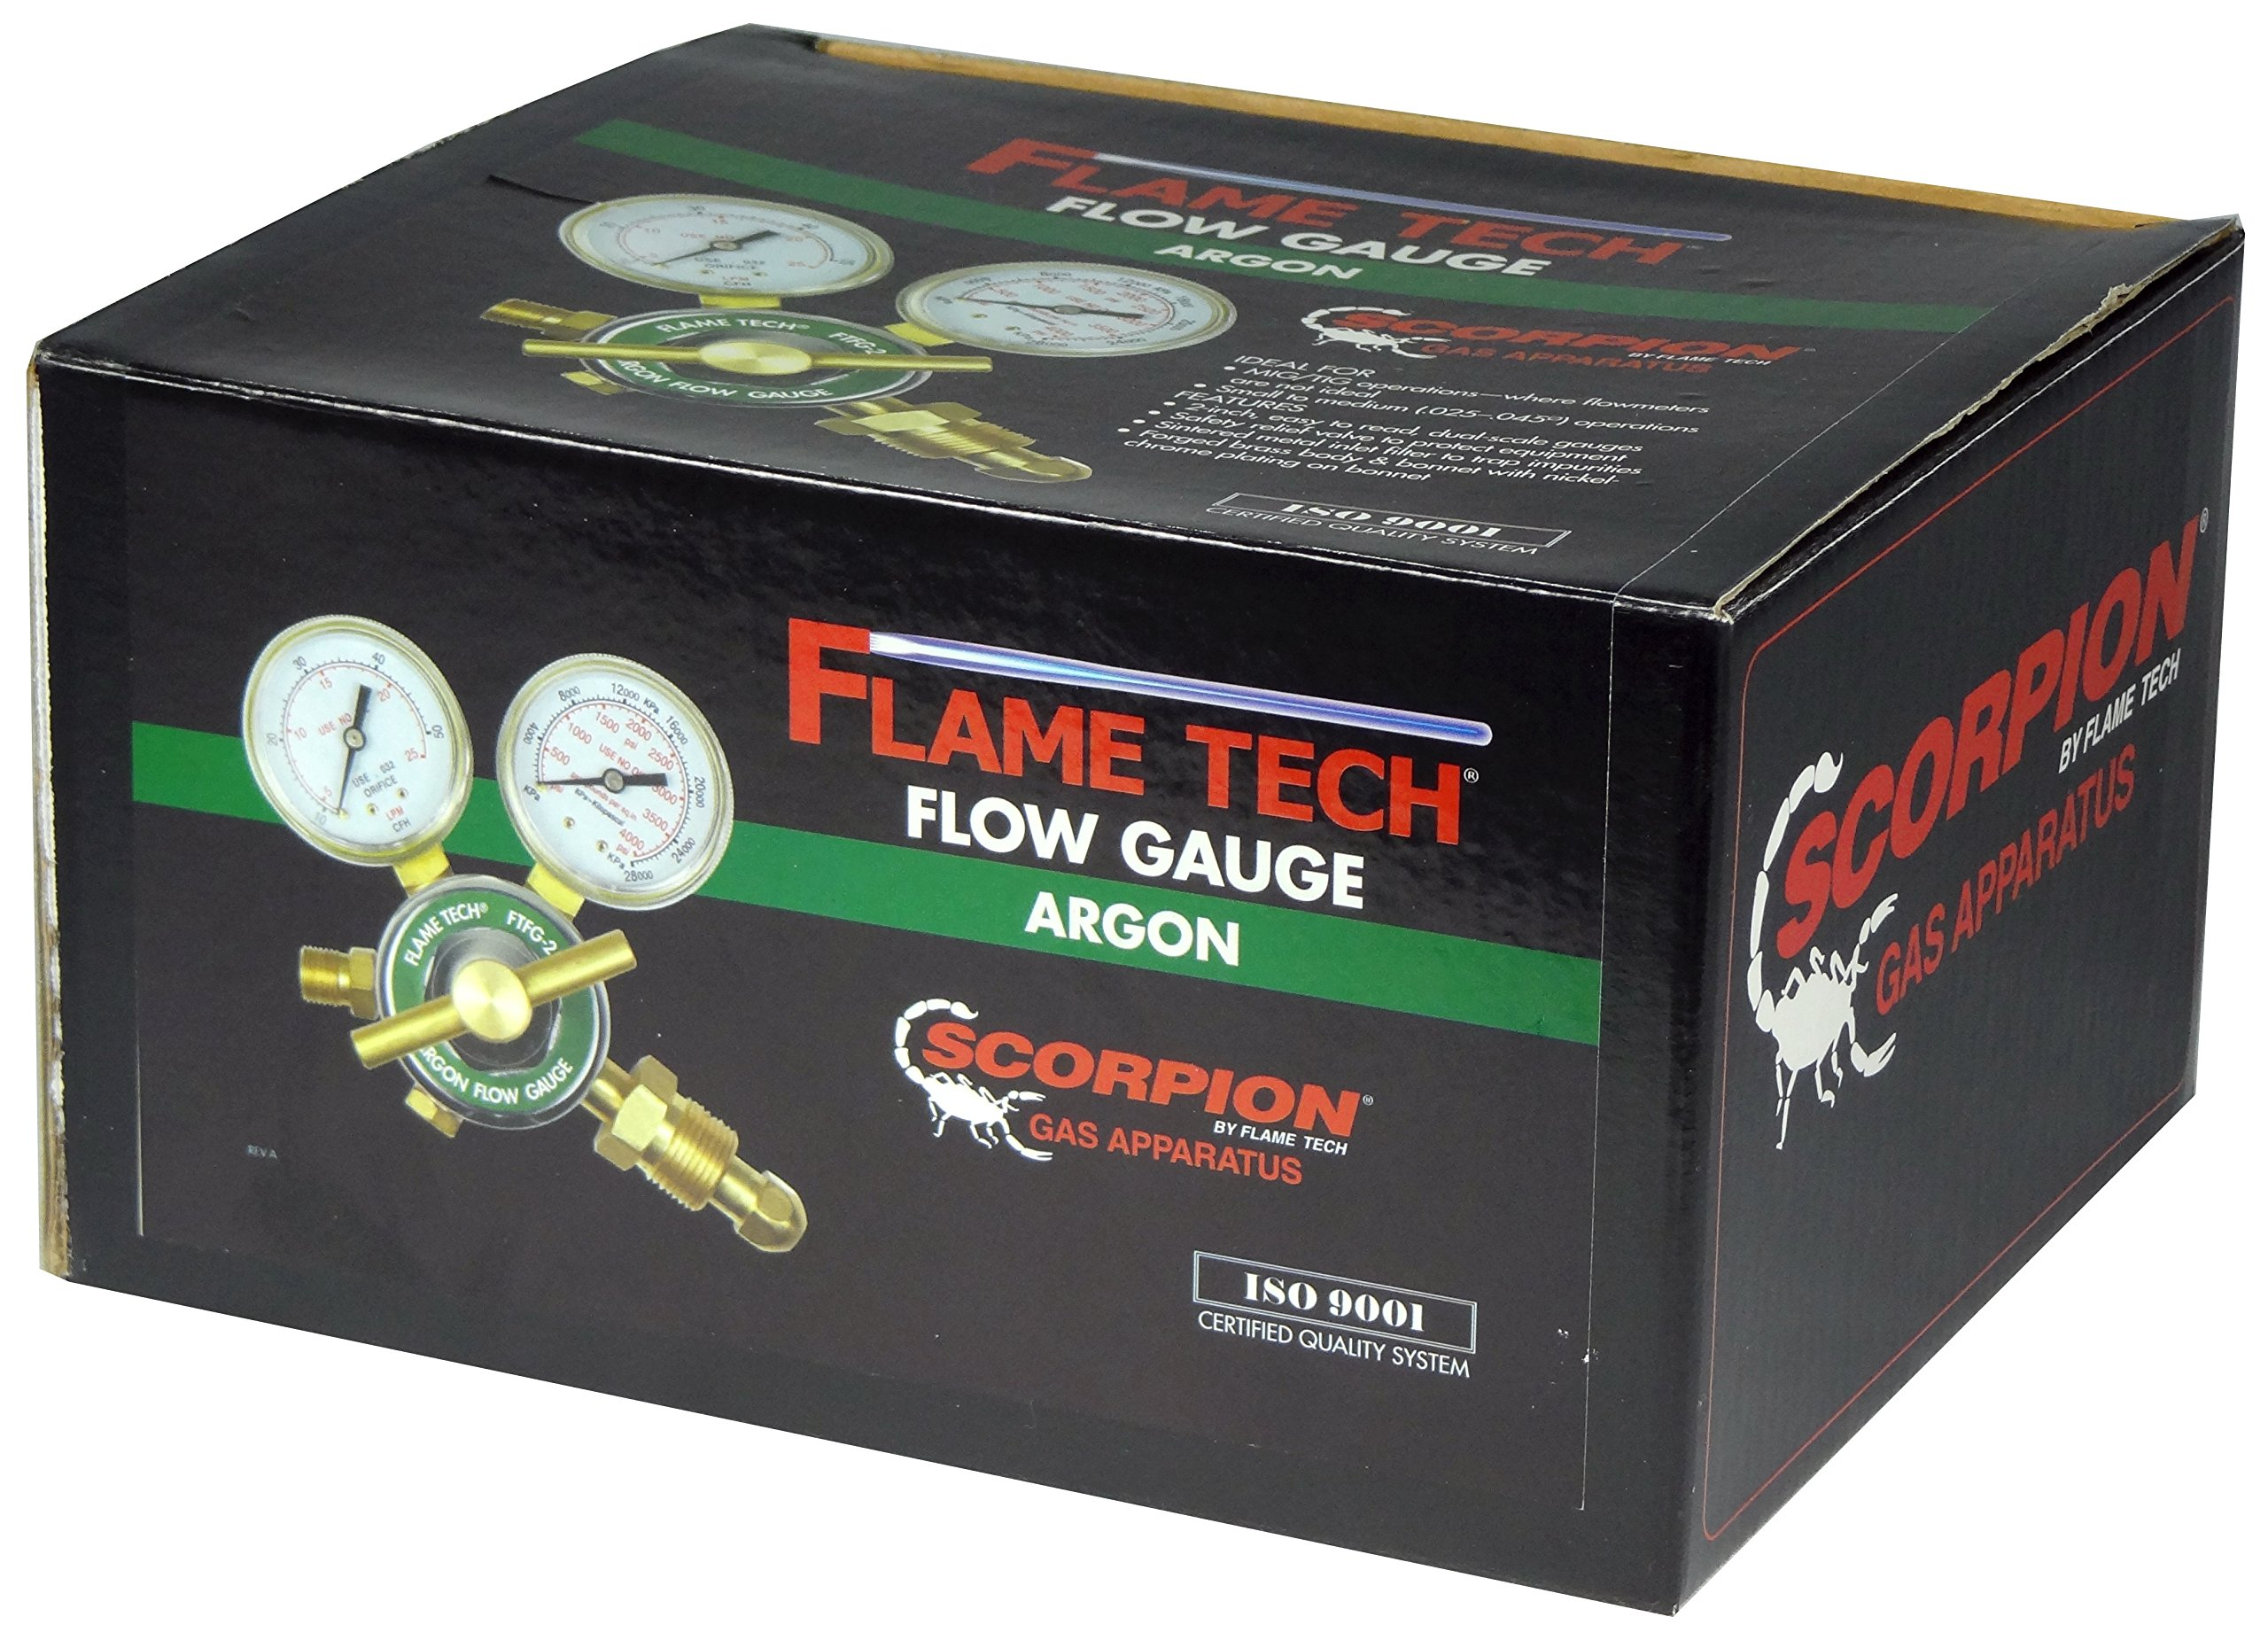 FlameTech FTFG-25-AR Flow Gauge Argon Regulator, Box Packaging, Tested in The USA by Flame Tech Inc.